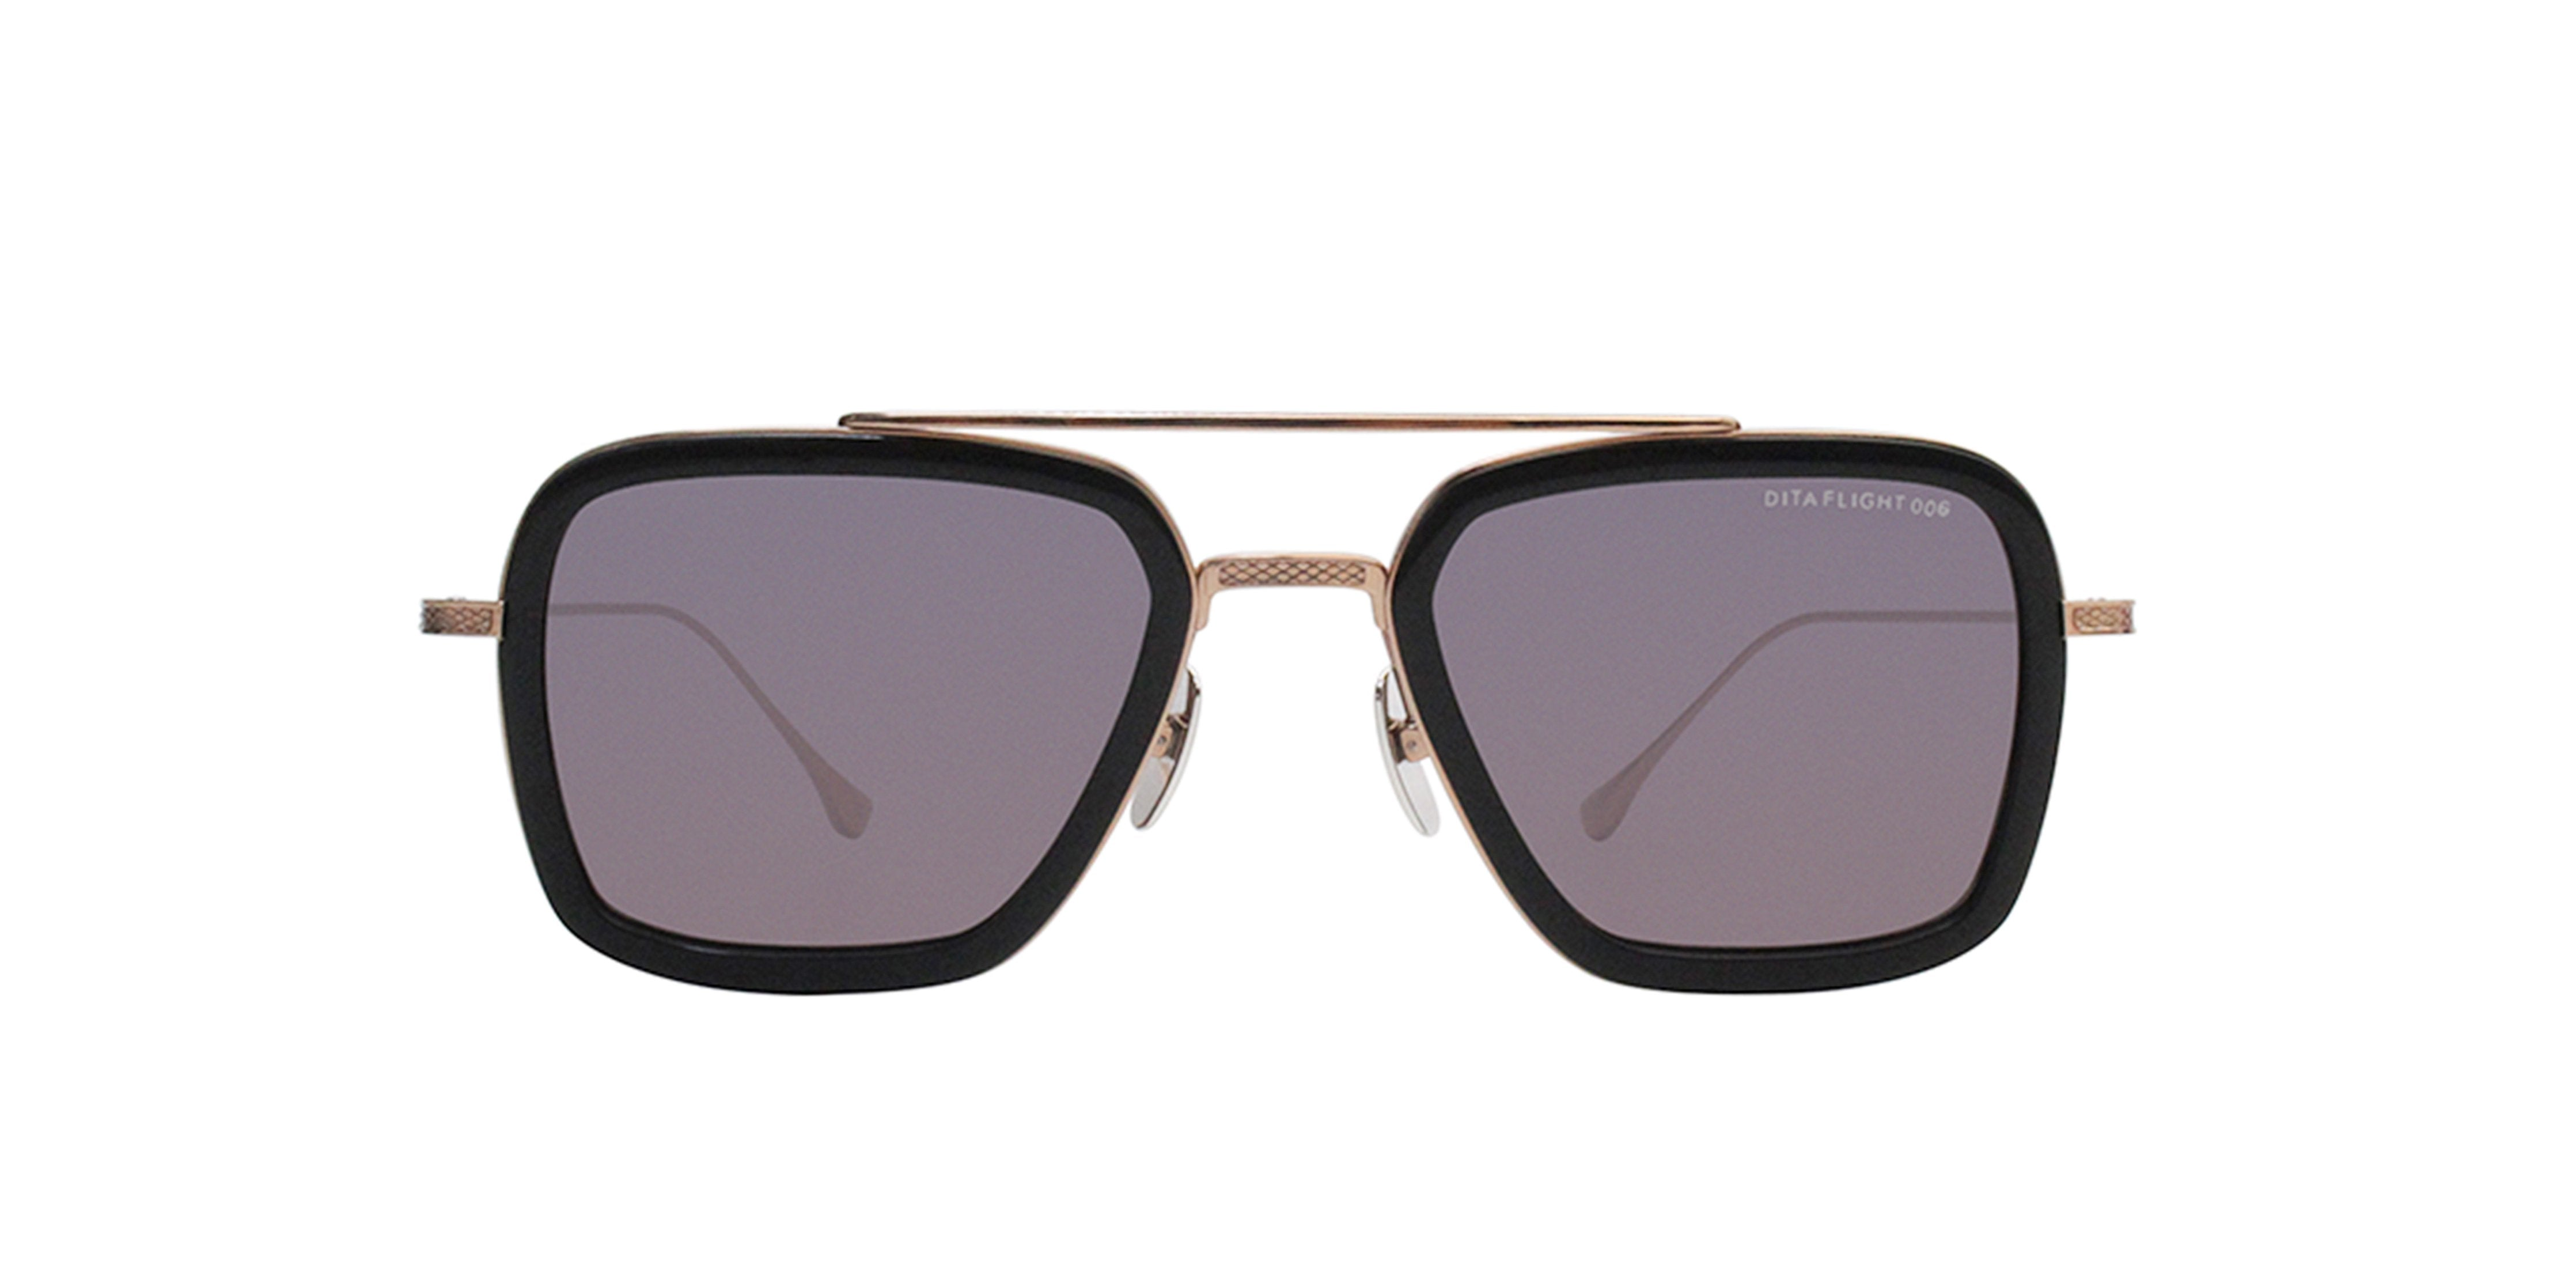 Dita - Flight.006 Black Rose Gold Aviator Men Sunglasses - 52mm-Sunglasses-Designer Eyes